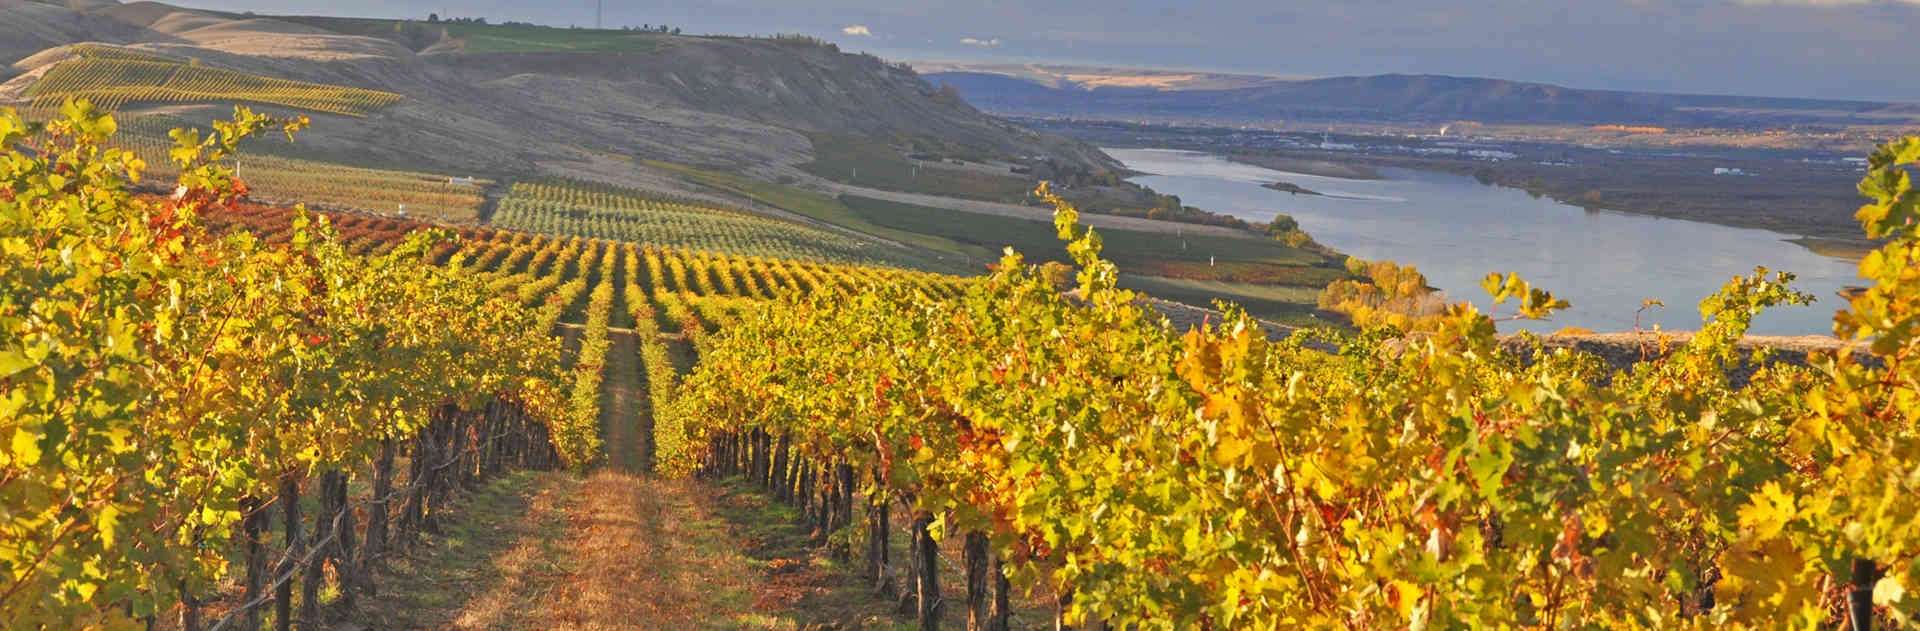 Sagemoor Vineyards' wine grapes basking in the fall sunshine of Washington State's Columbia River Valley.